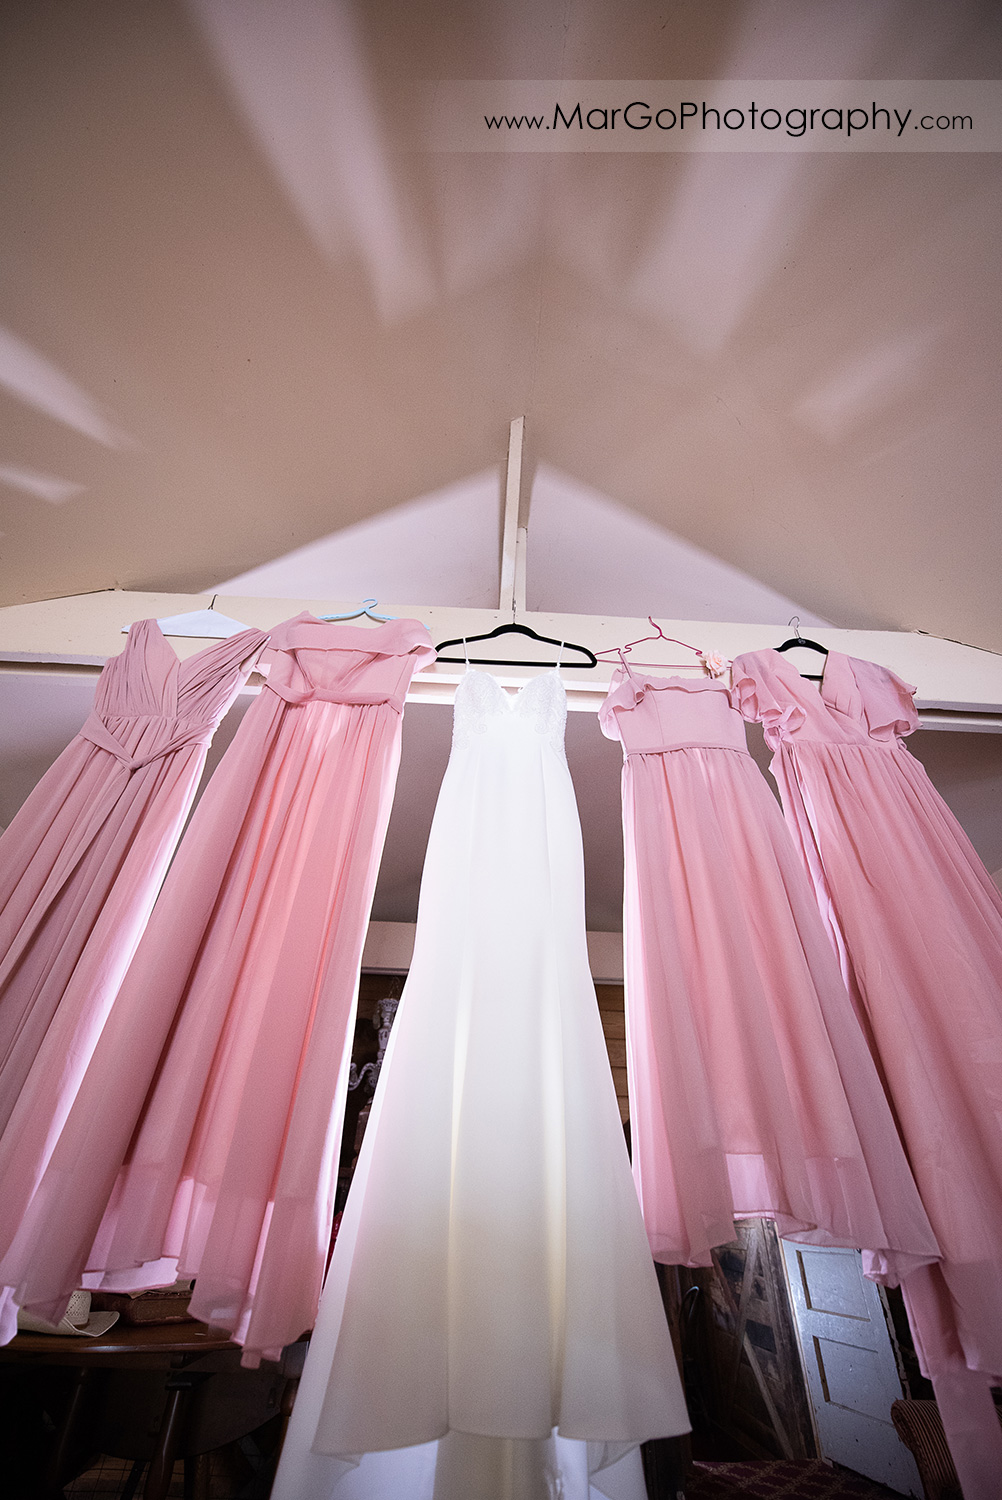 white bridal and pink bridesmaids dresses hanging from the ceiling at Long Branch Saloon & Farms in Half Moon Bay